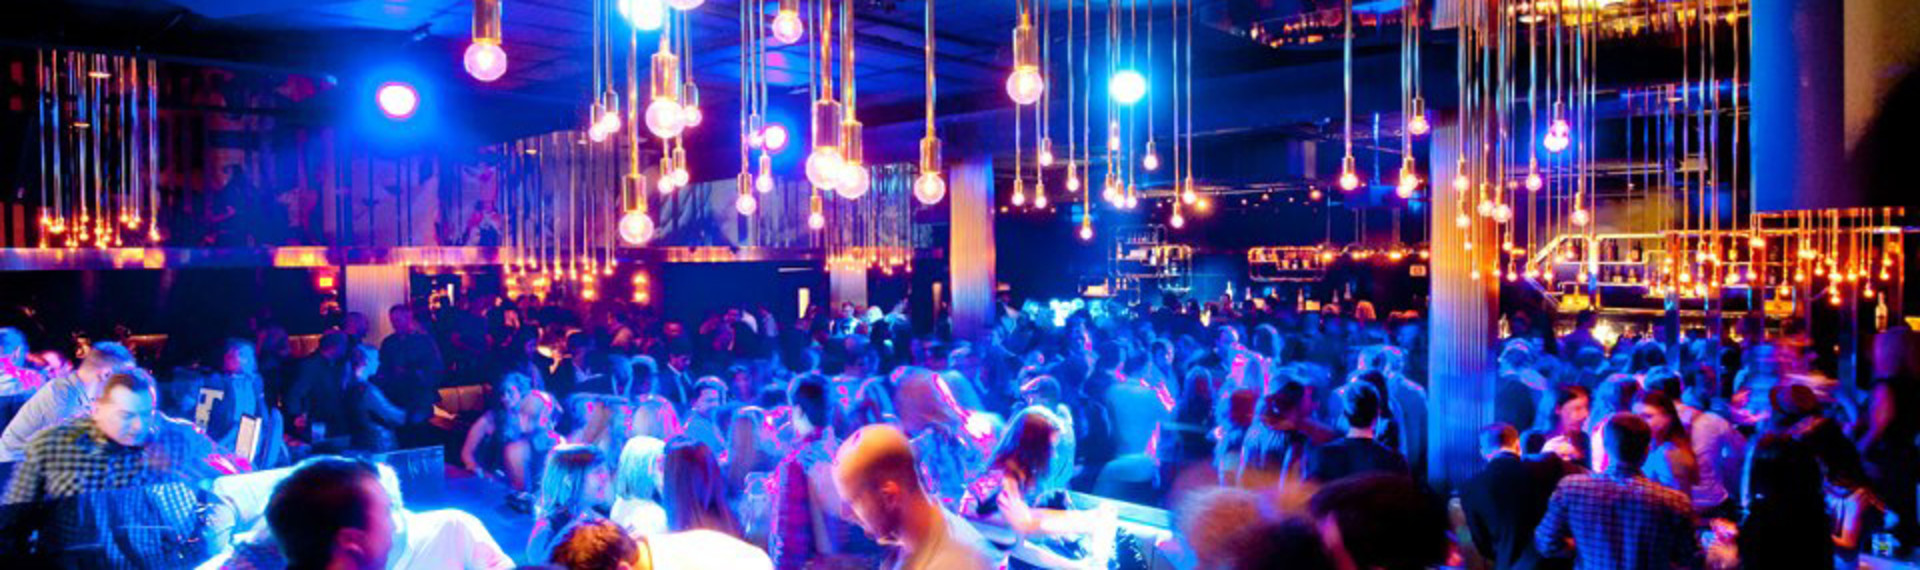 Berlin VIP-bord & flaske - House of Weekend Club image